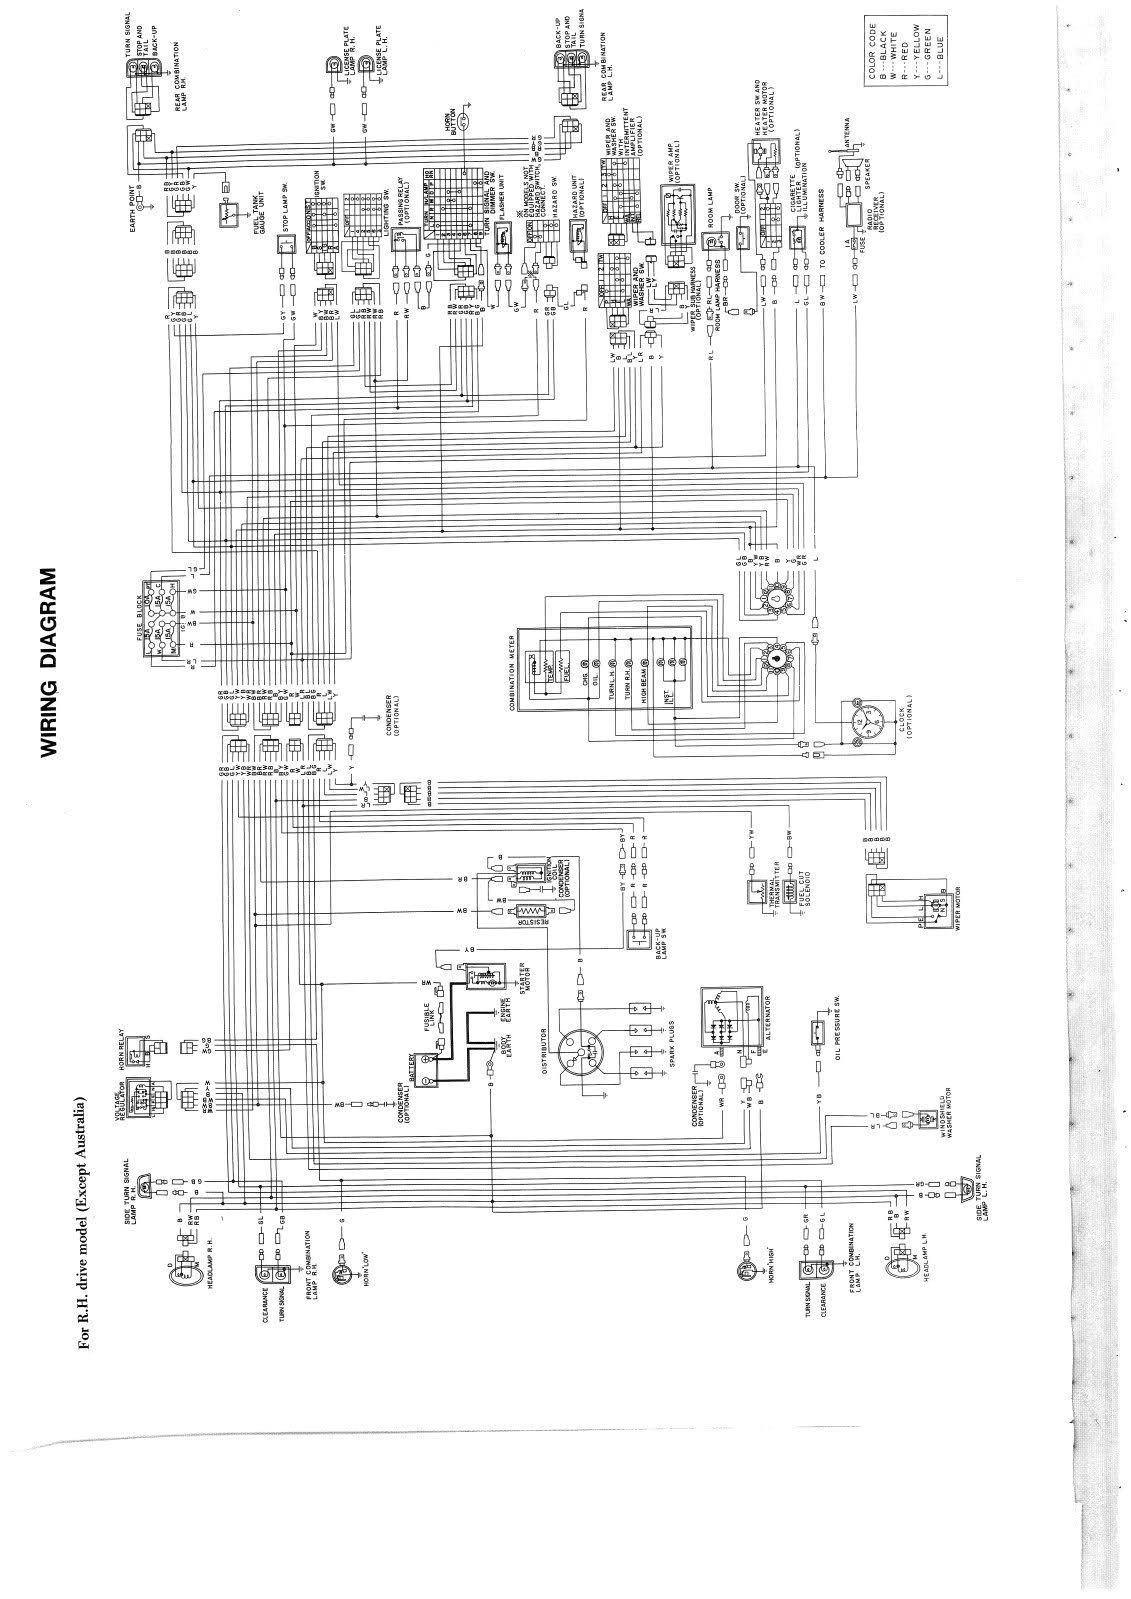 Cadillac Electrical Wiring Diagrams Abs Diagram For Kes 1993 Auto Air Brake Systems System